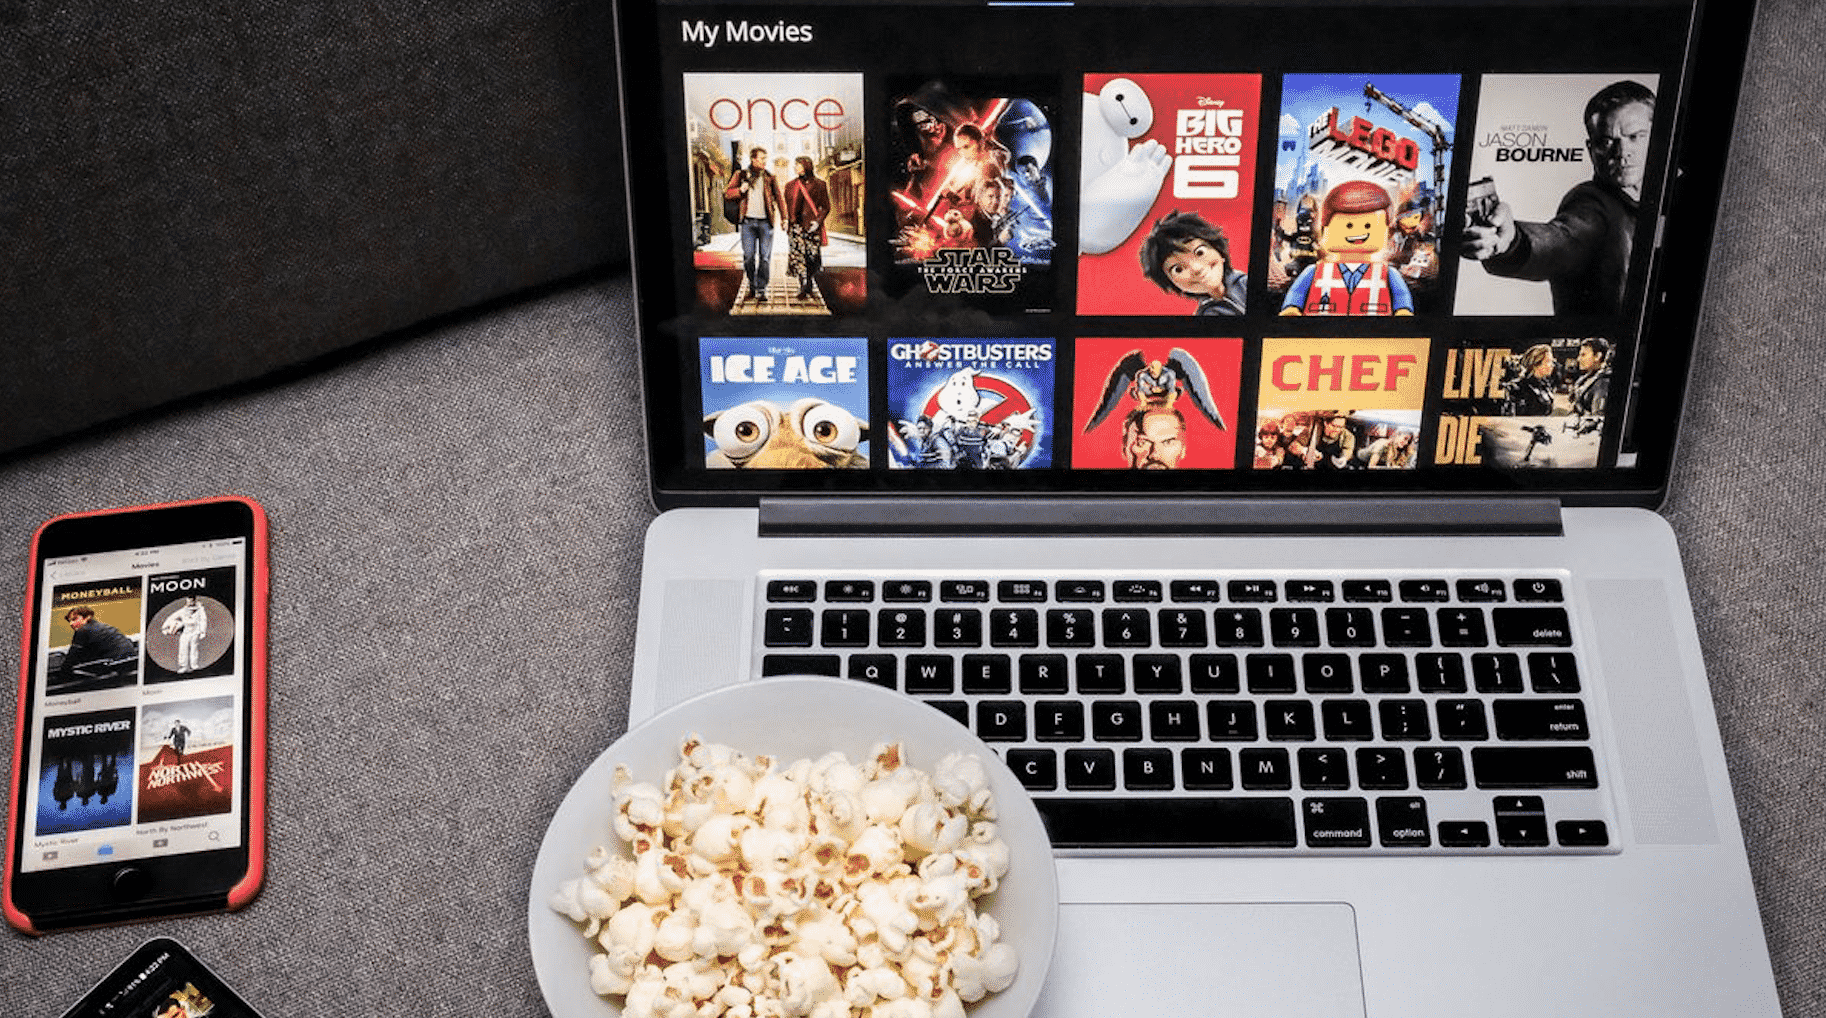 5 Tips If You Want To Watch Movies Anywhere Without Internet